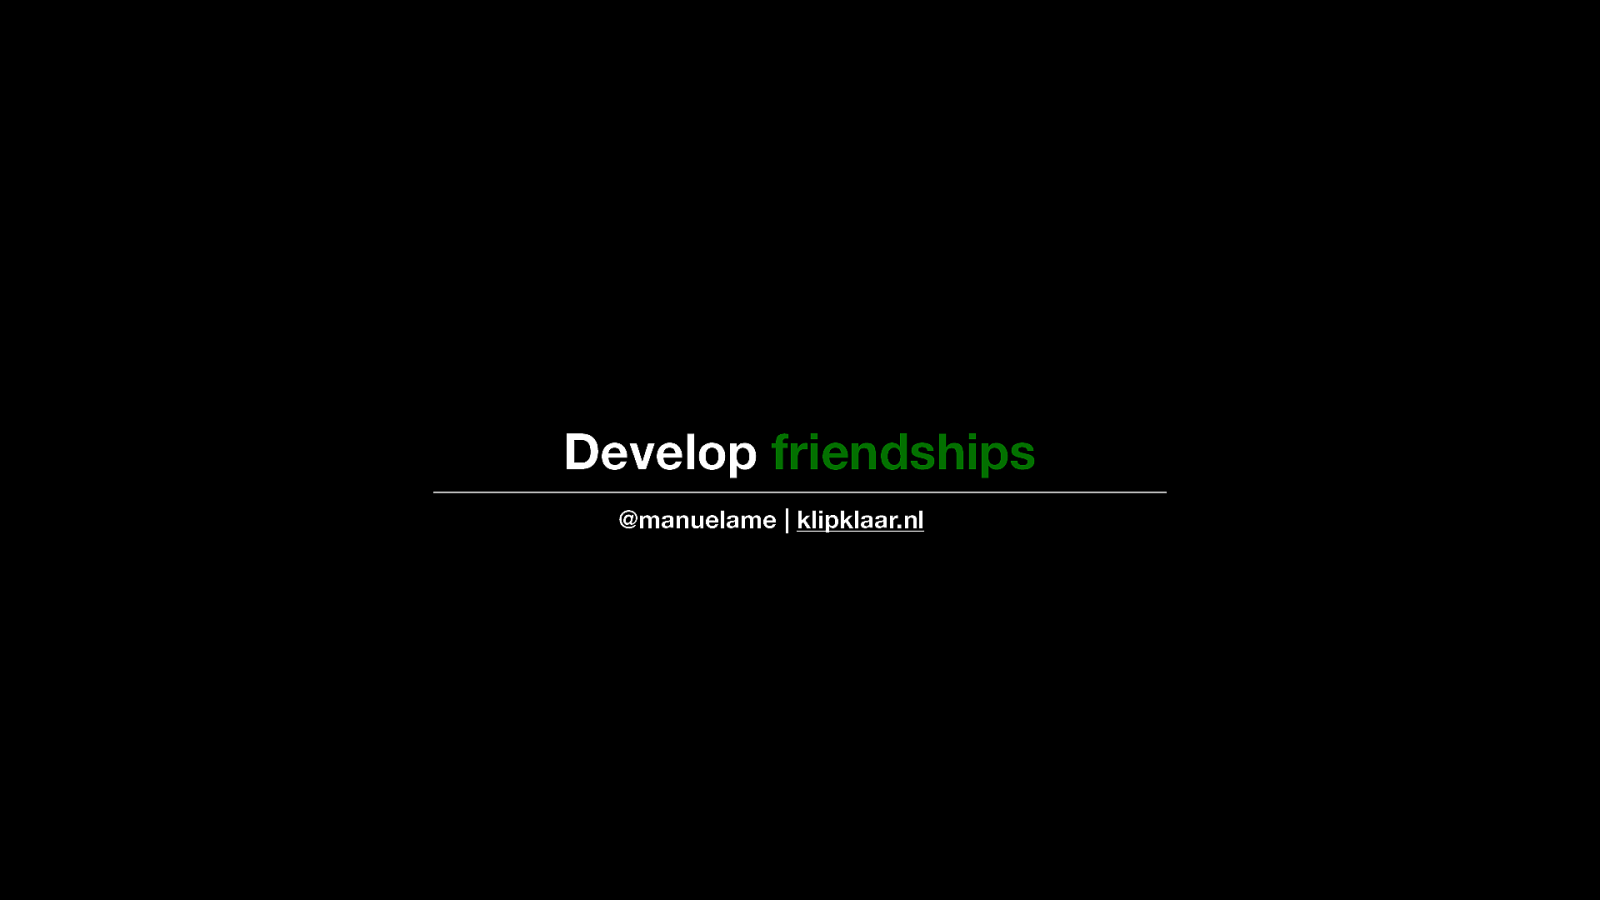 Develop friendships